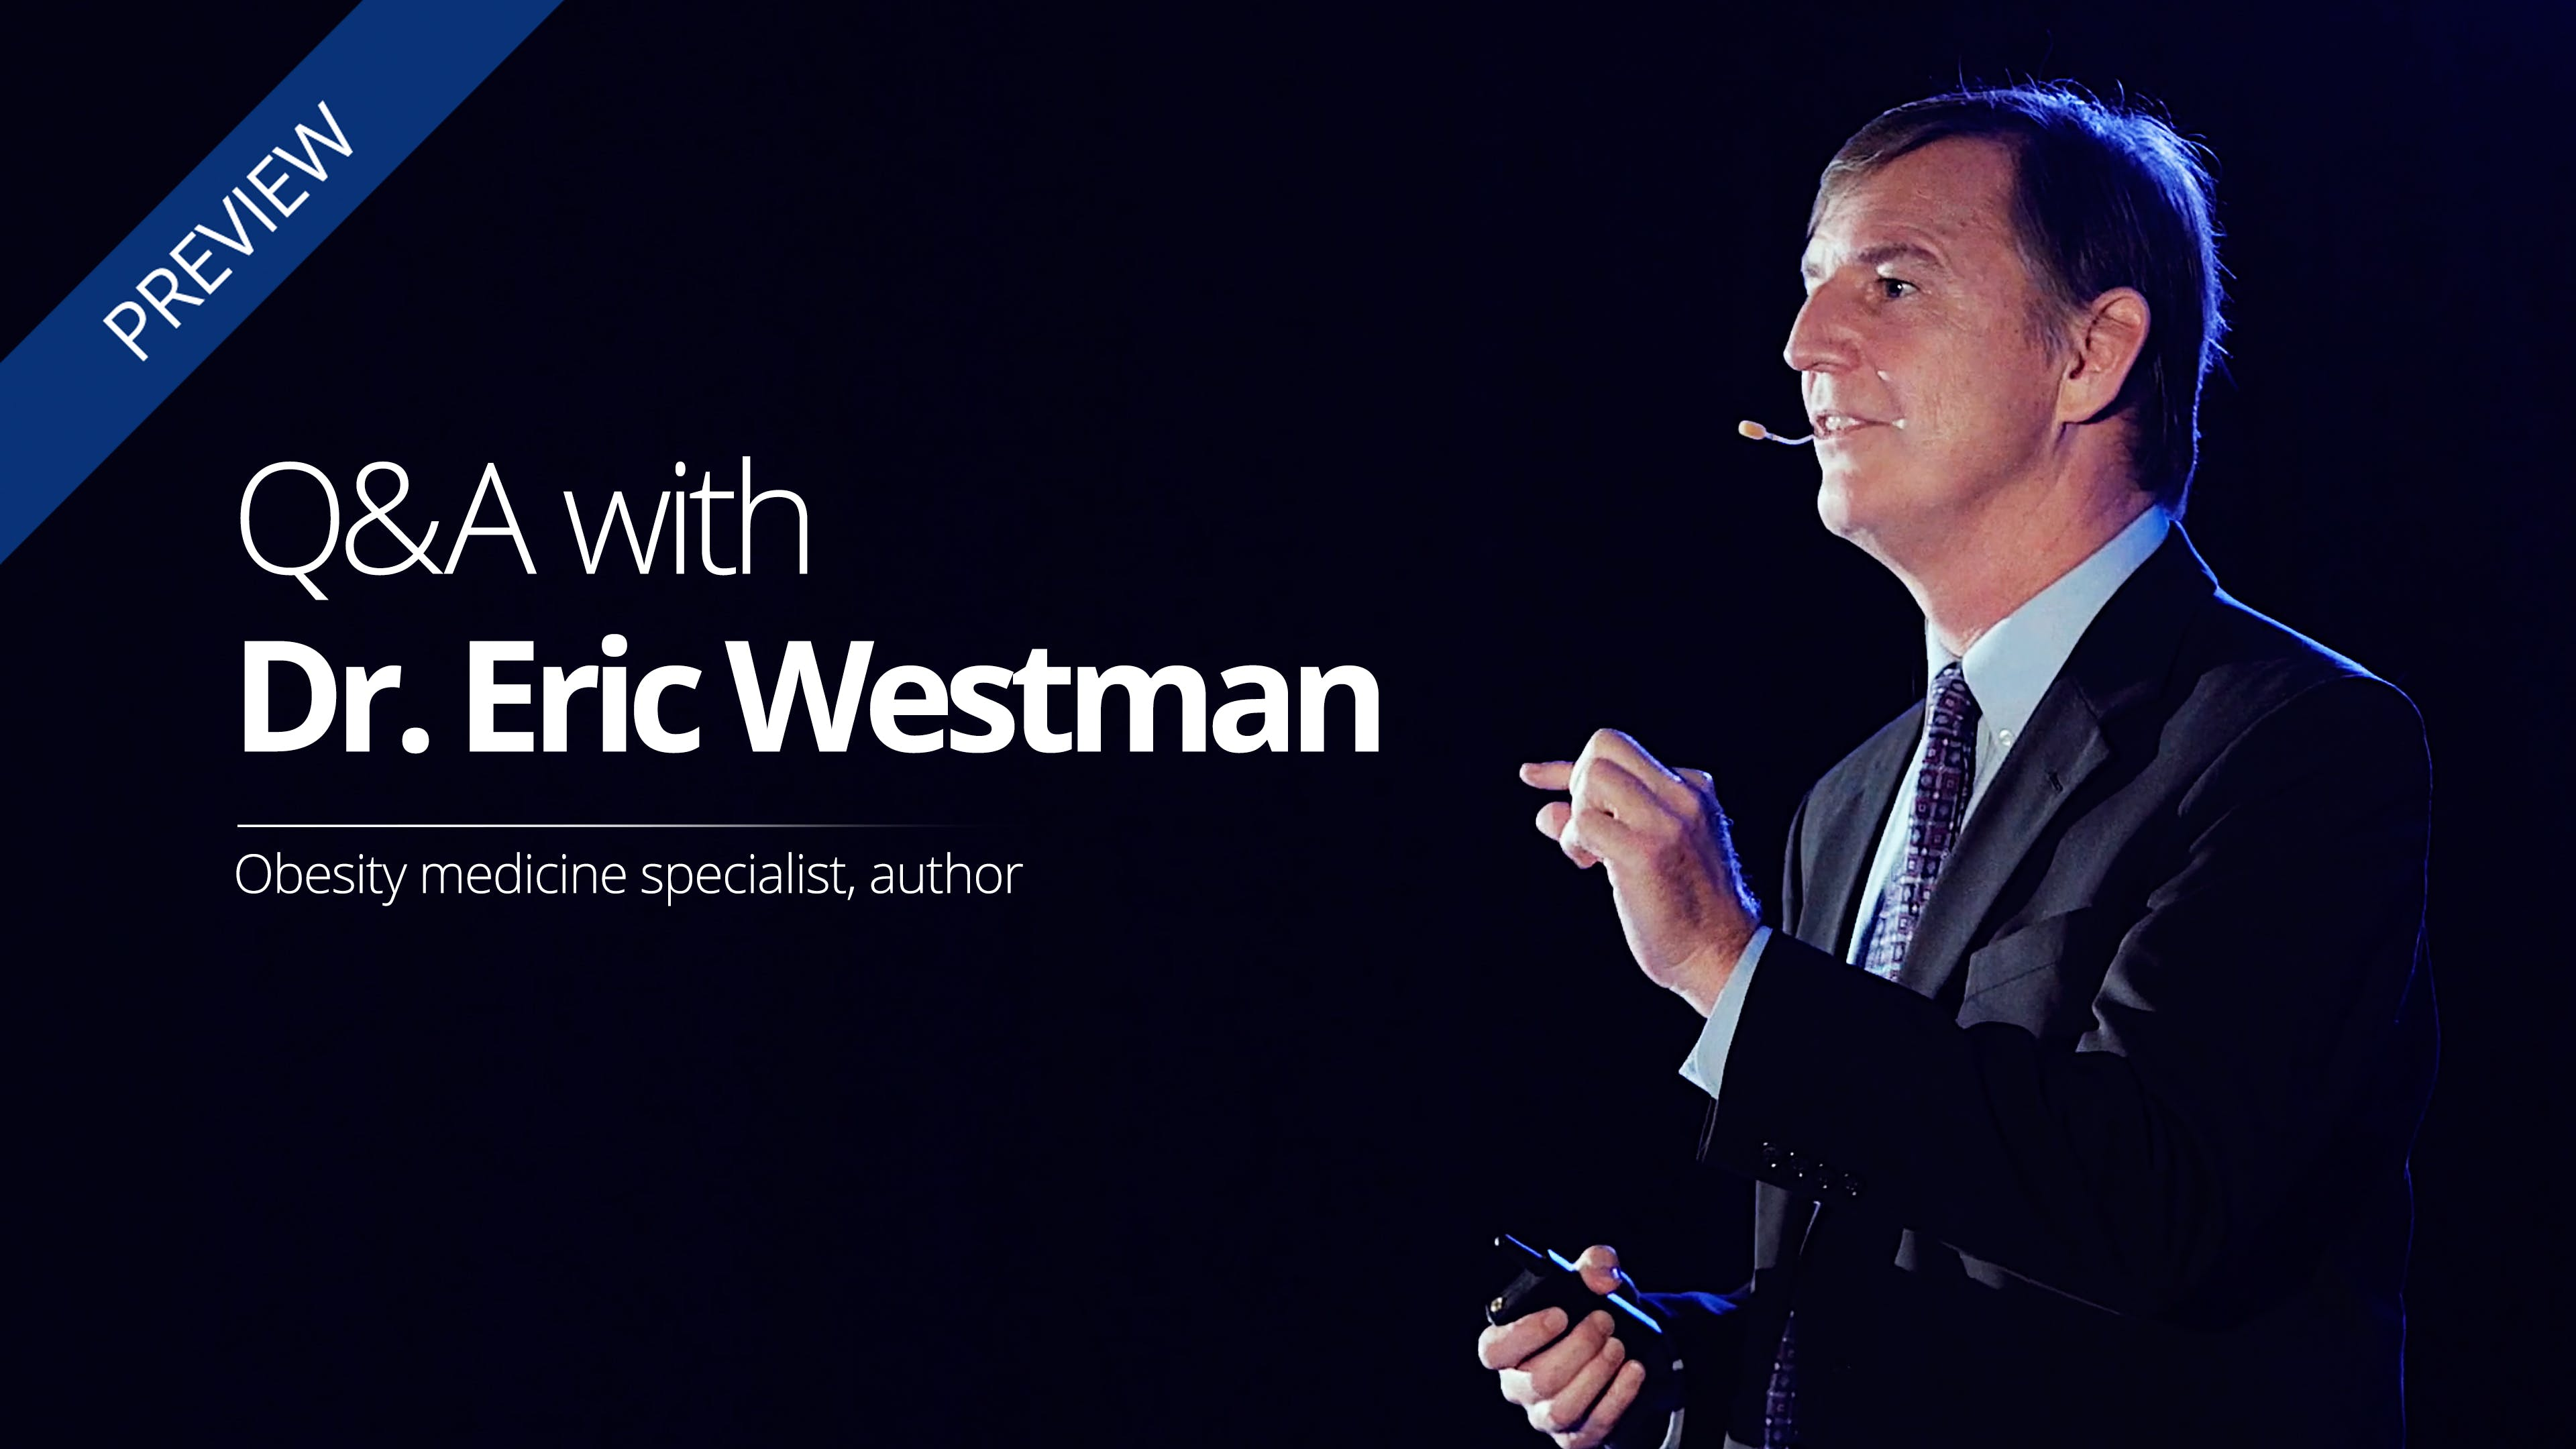 What are Dr. Eric Westman's recommendations for low-carb vegetarians?